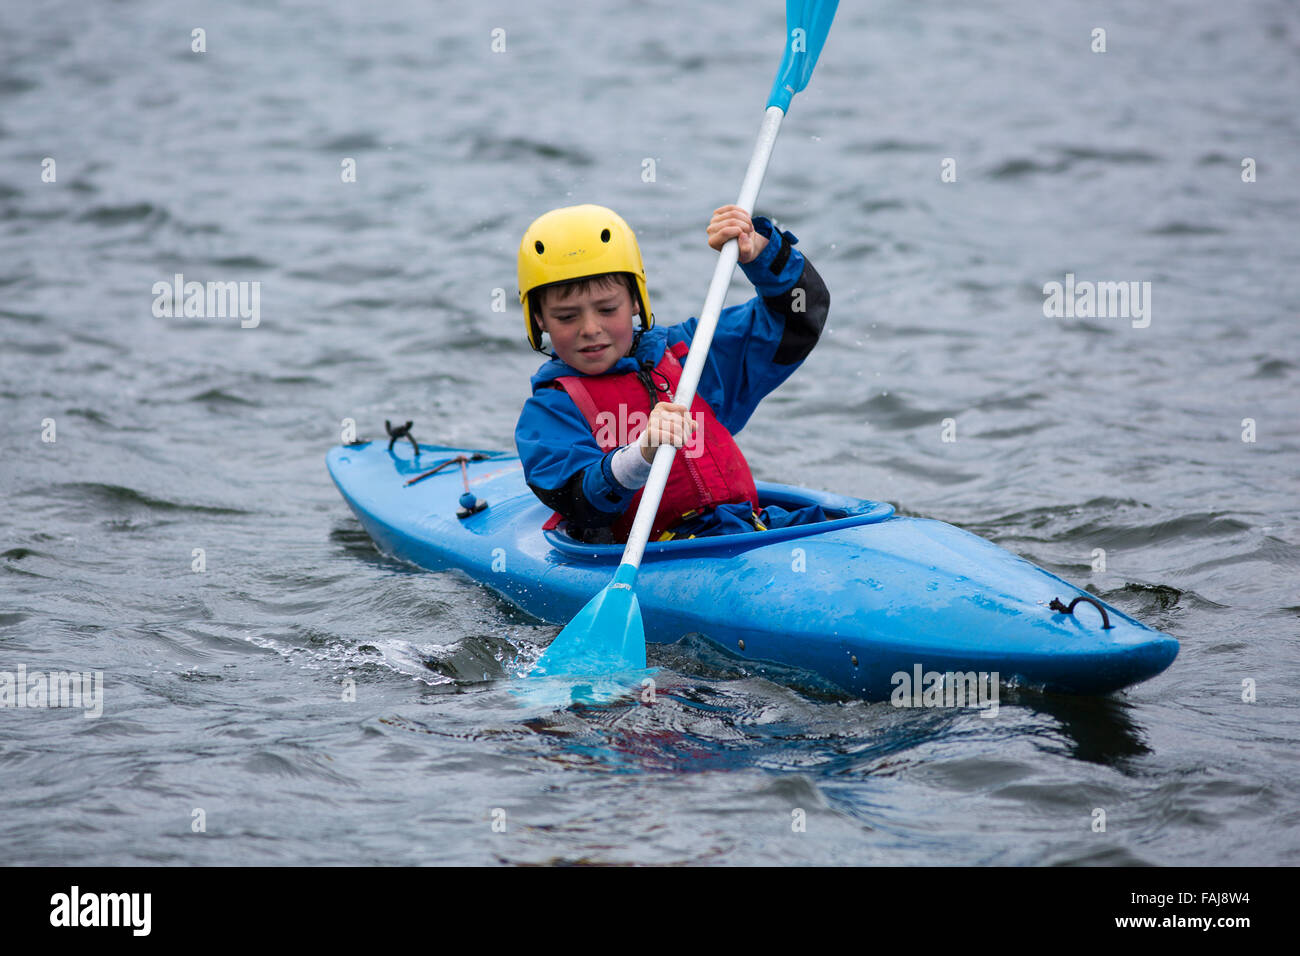 Boy Paddles in Kayak on Lake - Stock Image